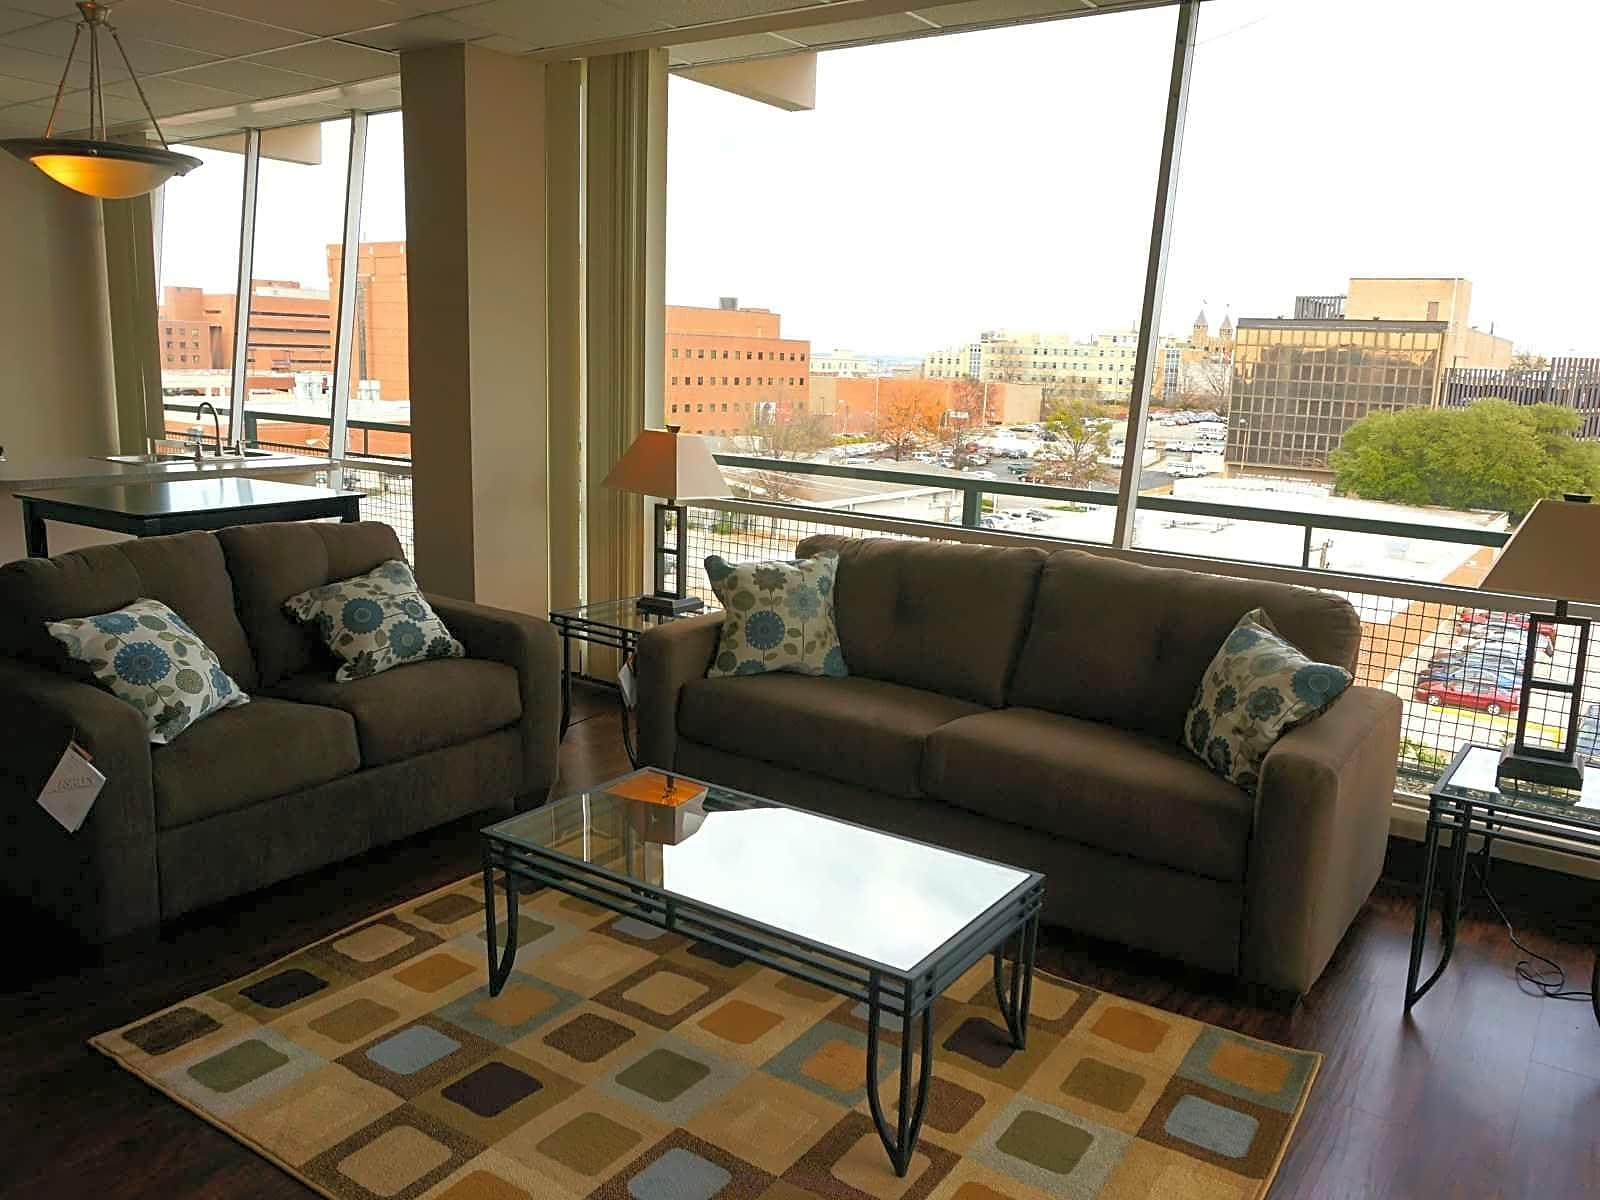 Apartments Near BSC University Place for Birmingham-Southern College Students in Birmingham, AL